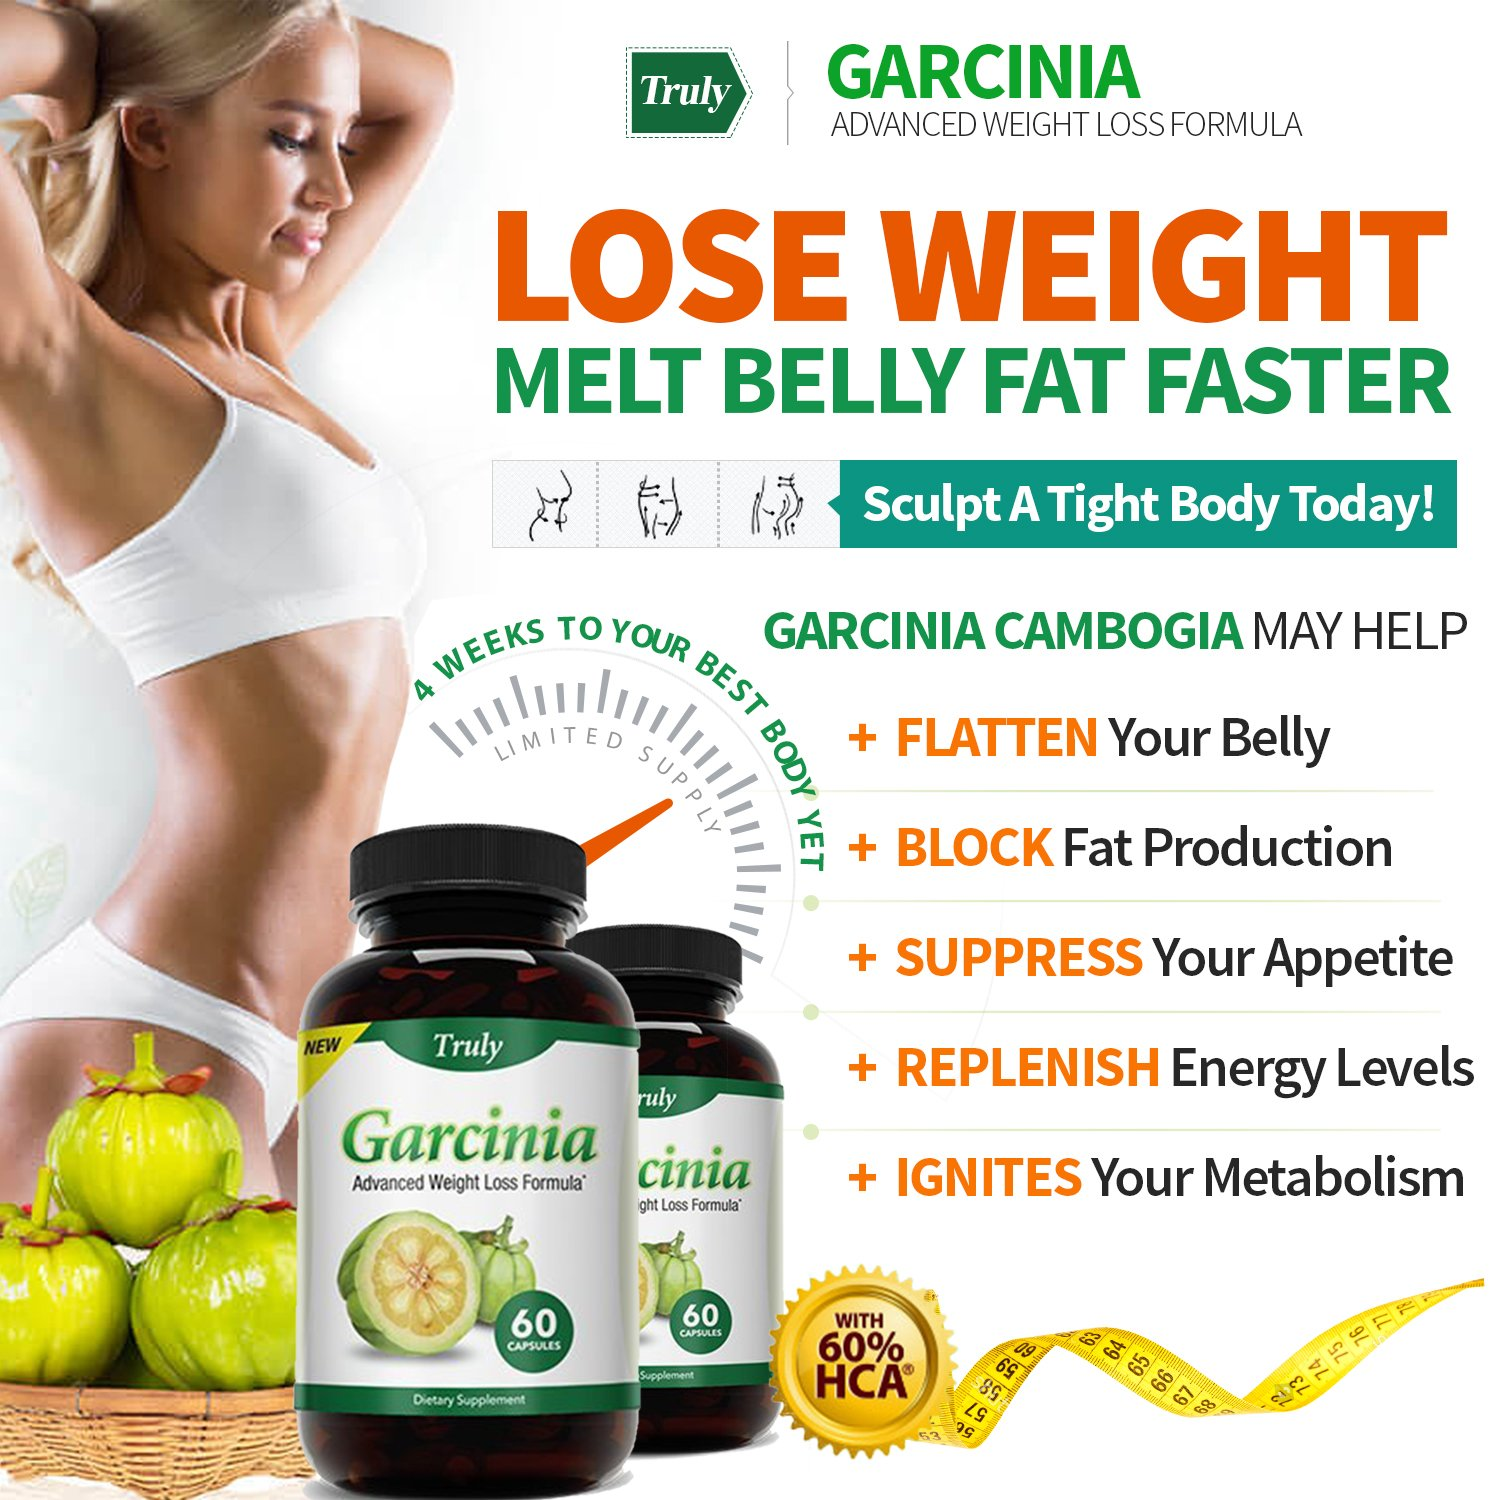 Truly Garcinia- Garcinia Cambogia- Ultra Premium Weight Management Formula-Natural And Potent Weight Loss Pills For Men And Women – Burn Belly Fat – Metabolism Booster – Powerful Antioxidant by Truly (Image #3)